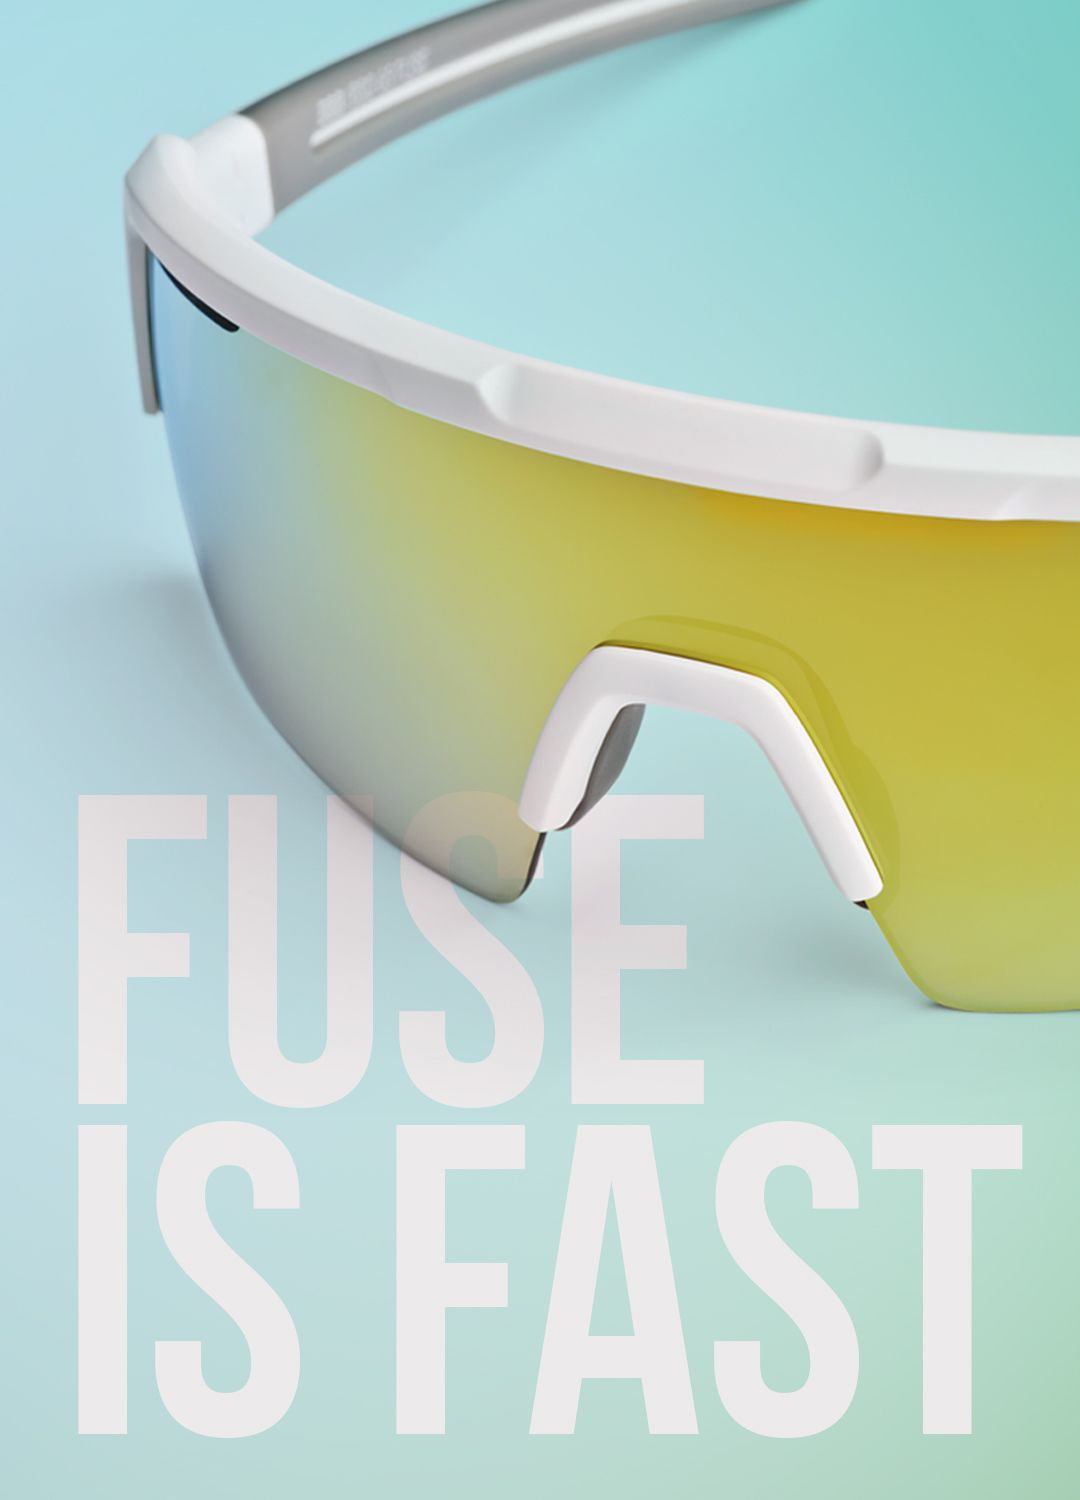 Fuse is Fast